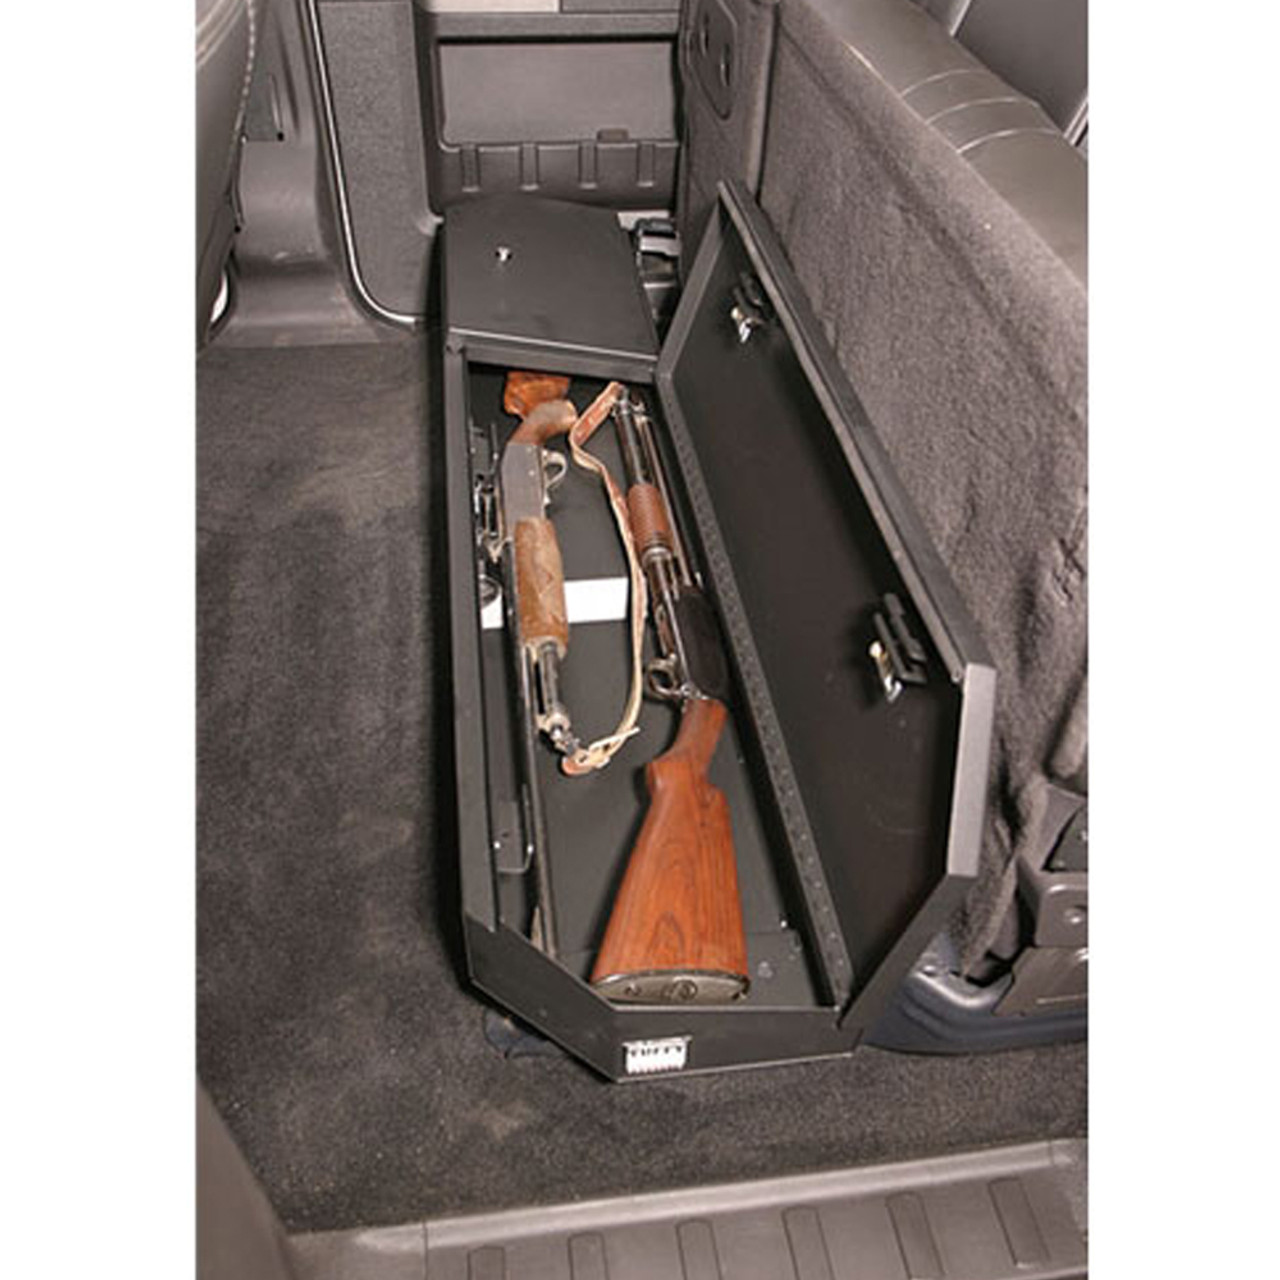 Tuffy Security 309-01 Ford F-250 and F-350 Crew Cab 2003+ Under Rear Seat Lockbox, 58x11x3, Weather Resistant, Welded 16 Gauge steel construction, Durable texture powder coat finish